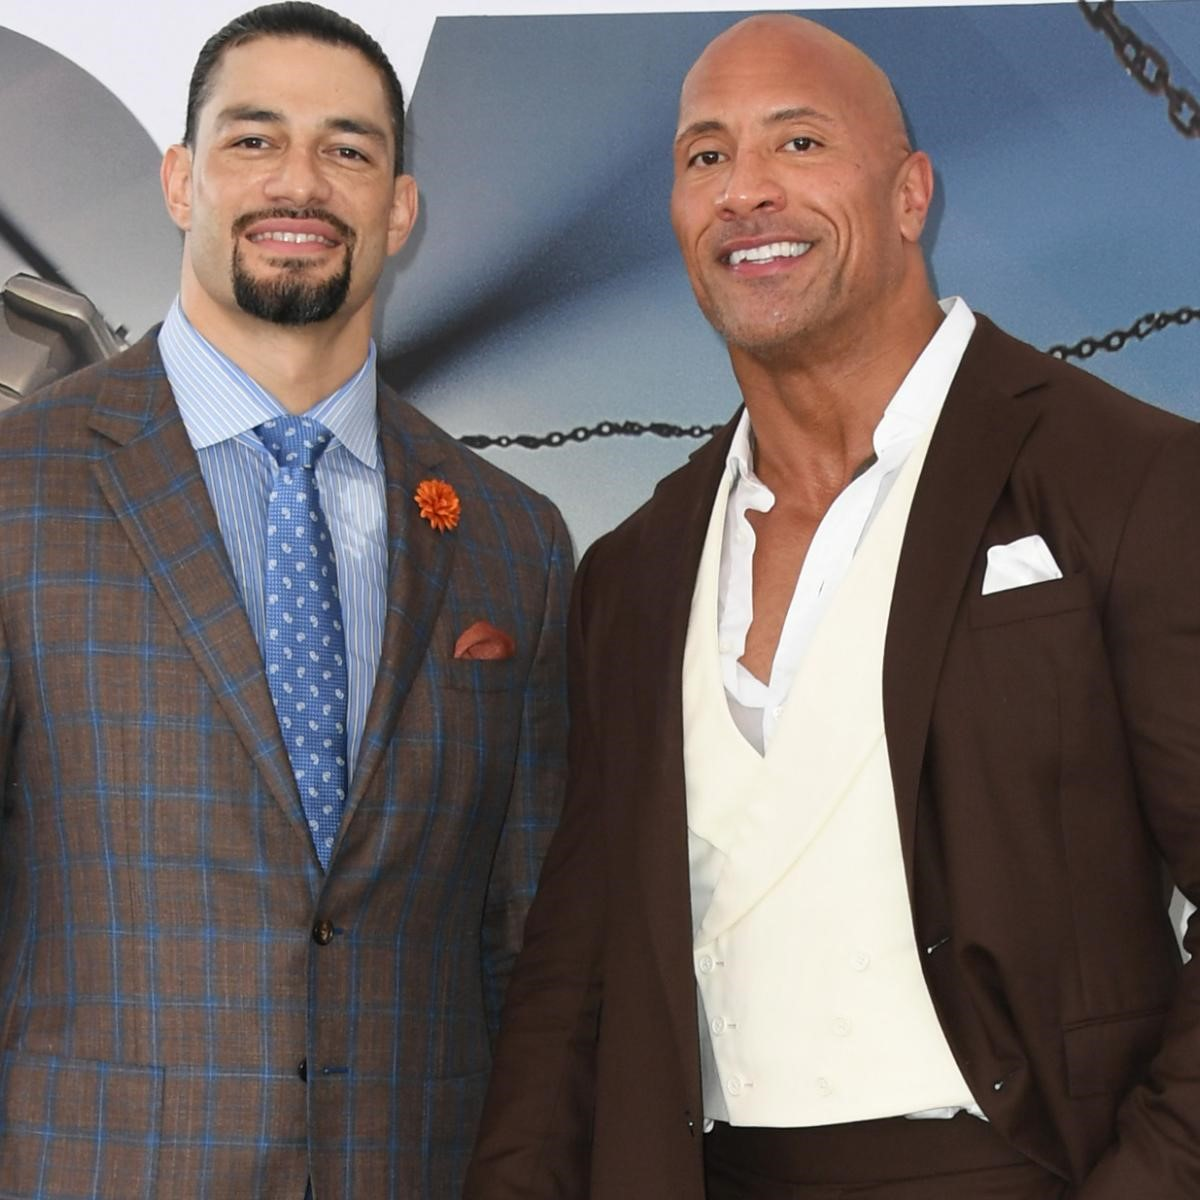 Roman Reigns & The Rock ; source:wikipedia